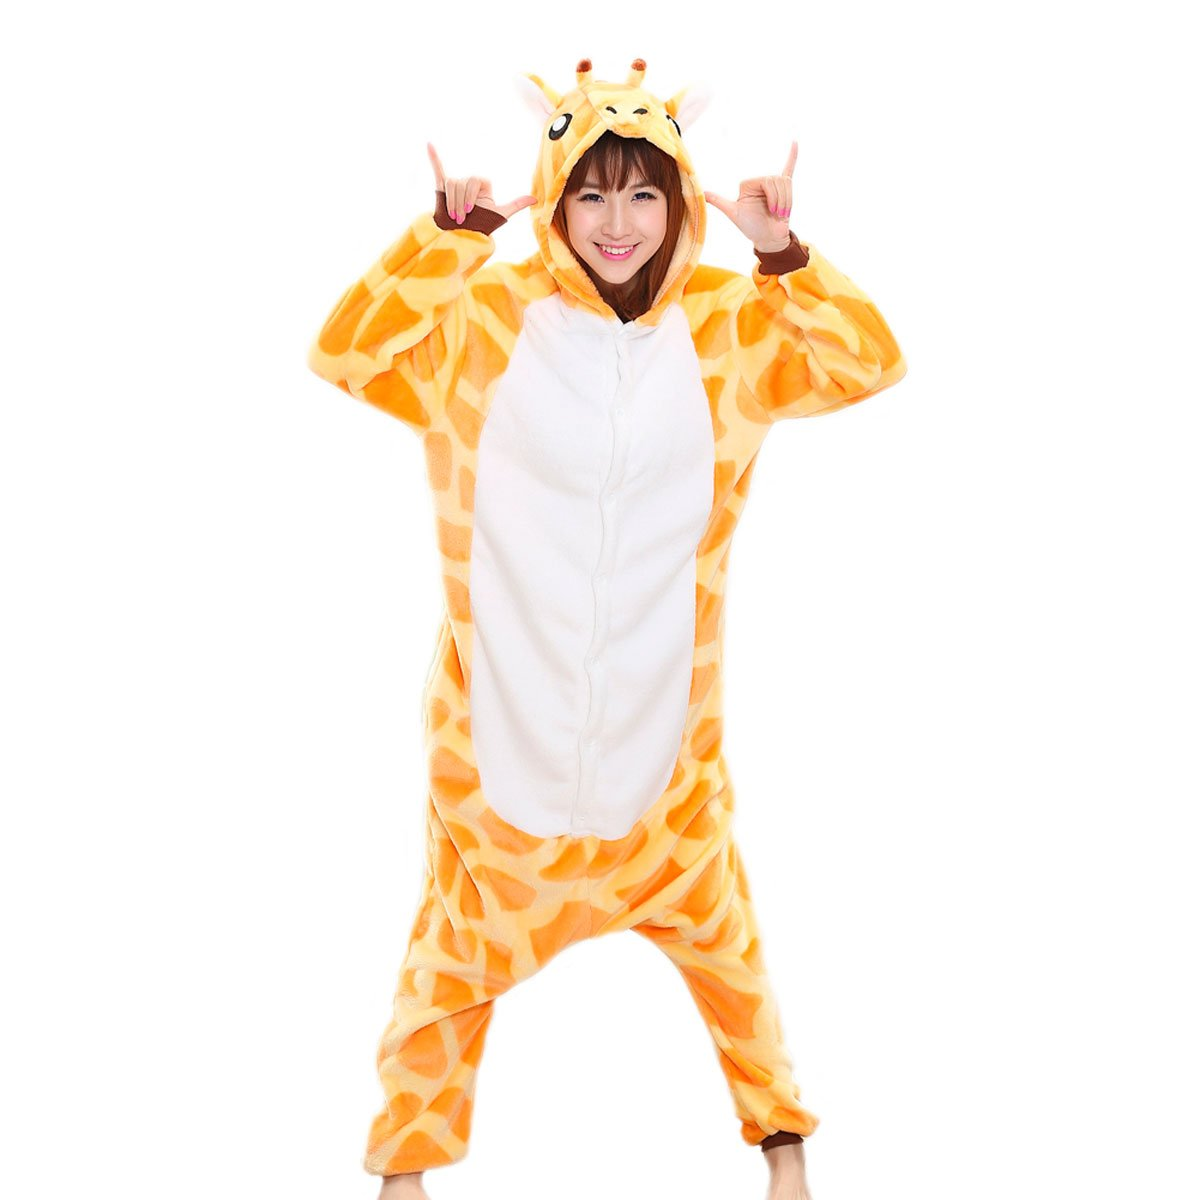 Adrinfly One-Piece Hooded Pajamas Unisex Costume Adult Animal Onesie Giraffe Cosplay